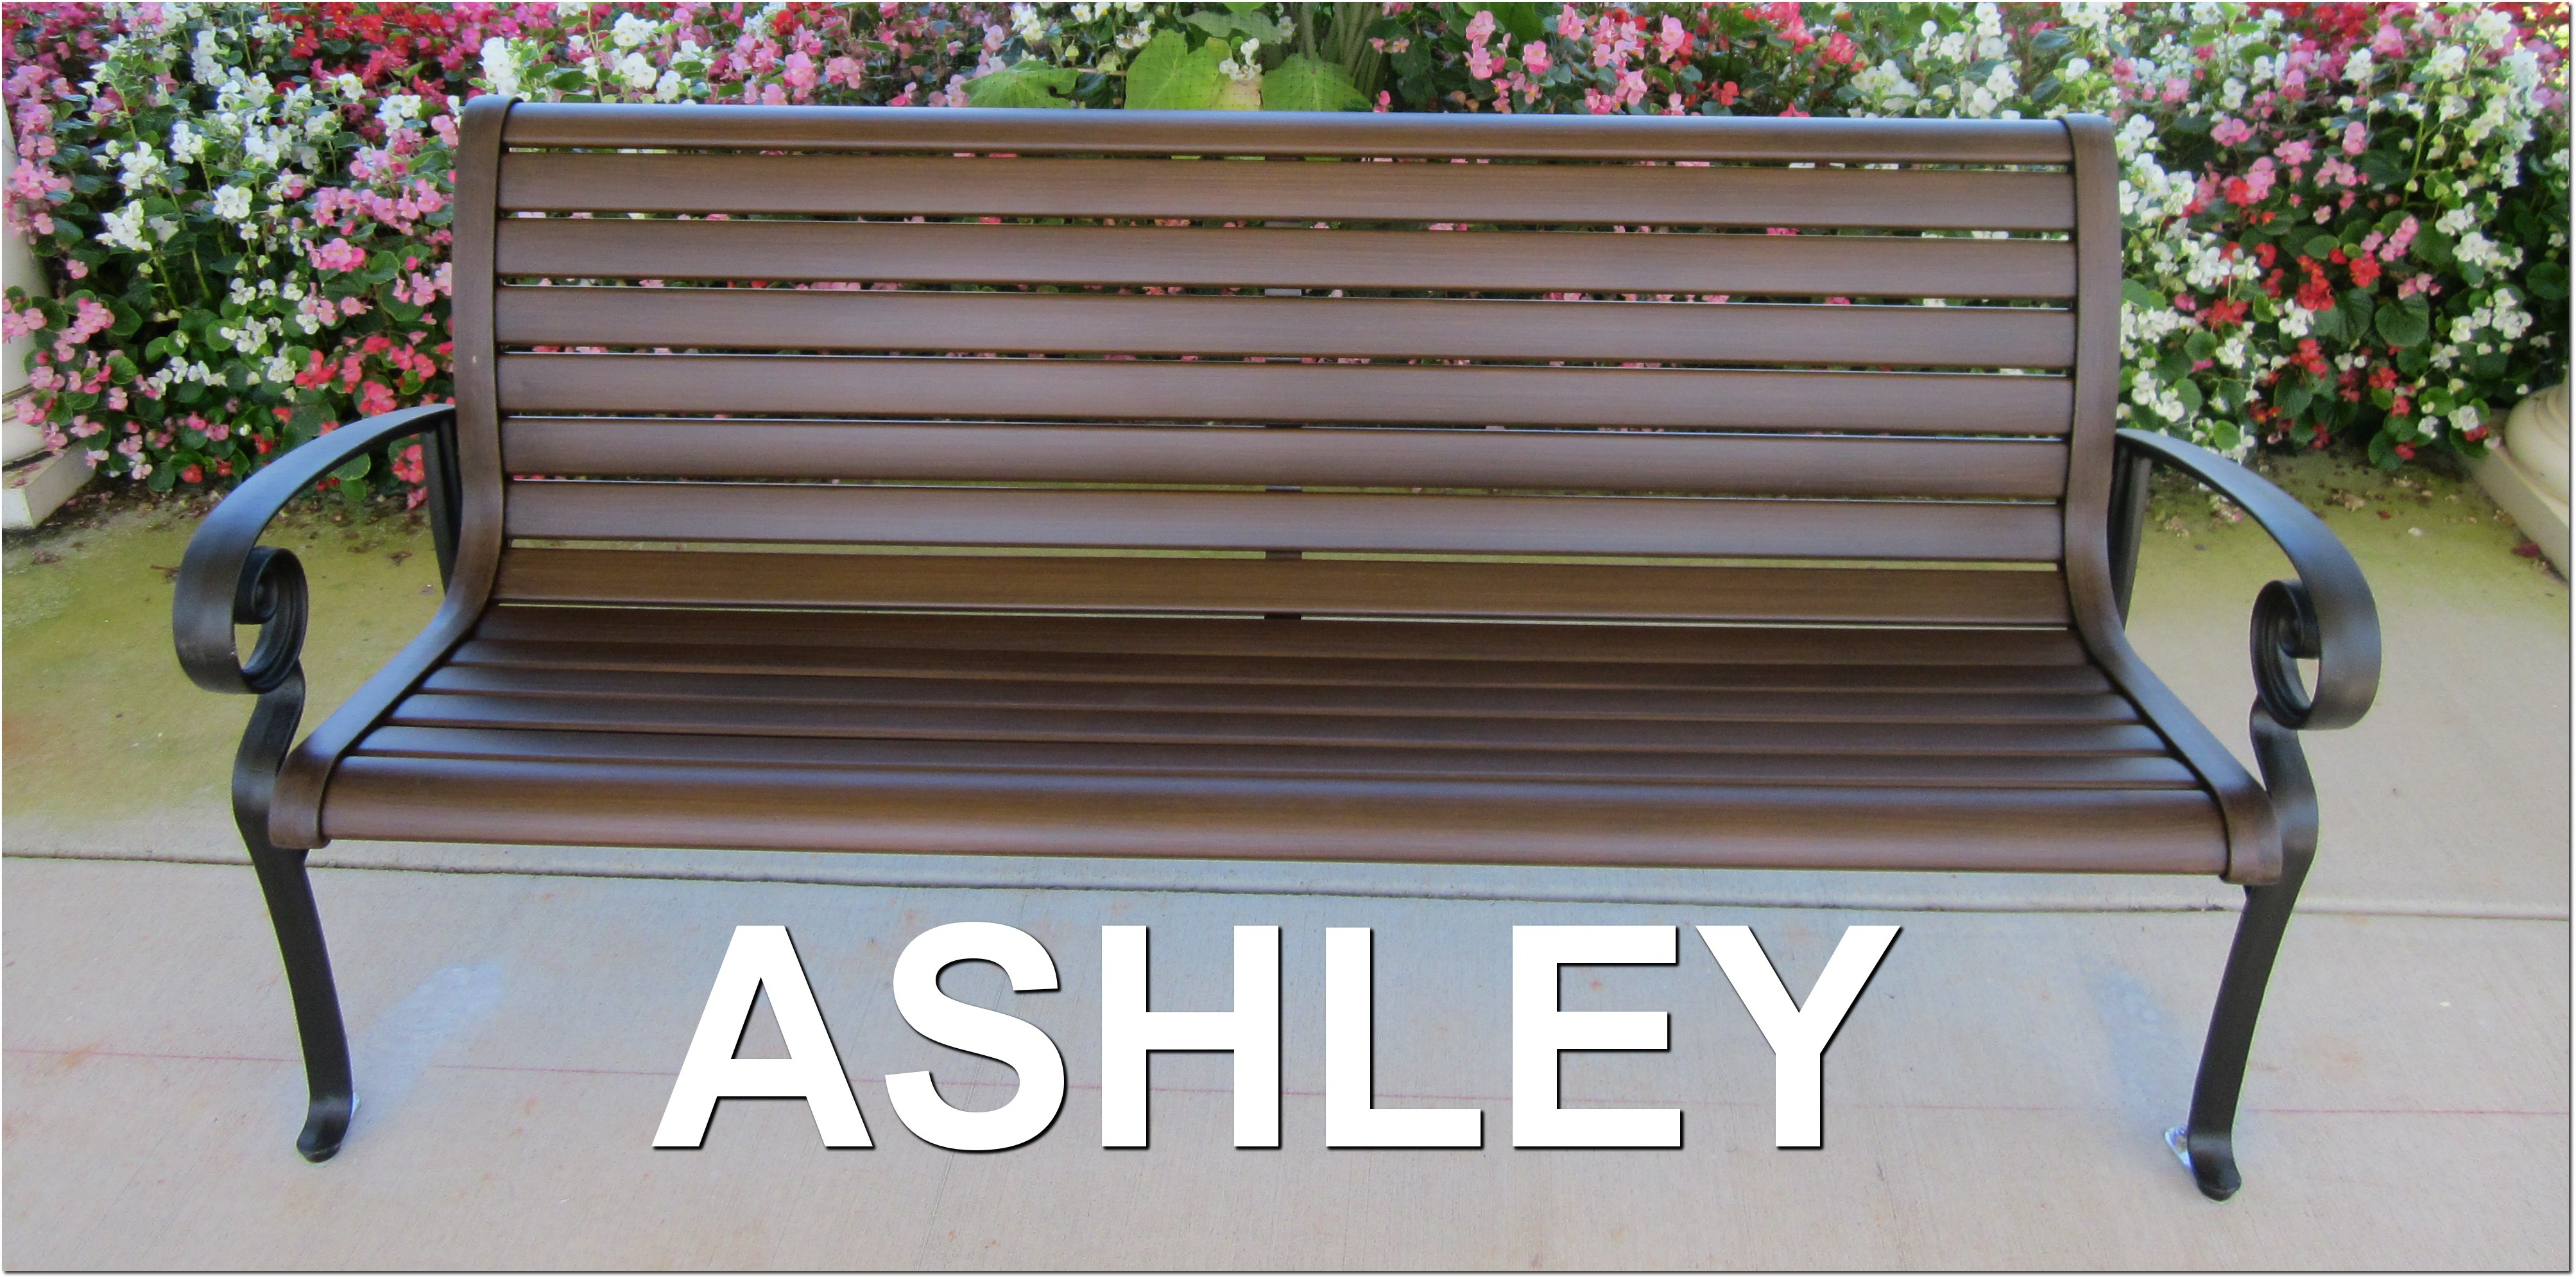 Ashley Collection Elegant Outdoor Park Bench